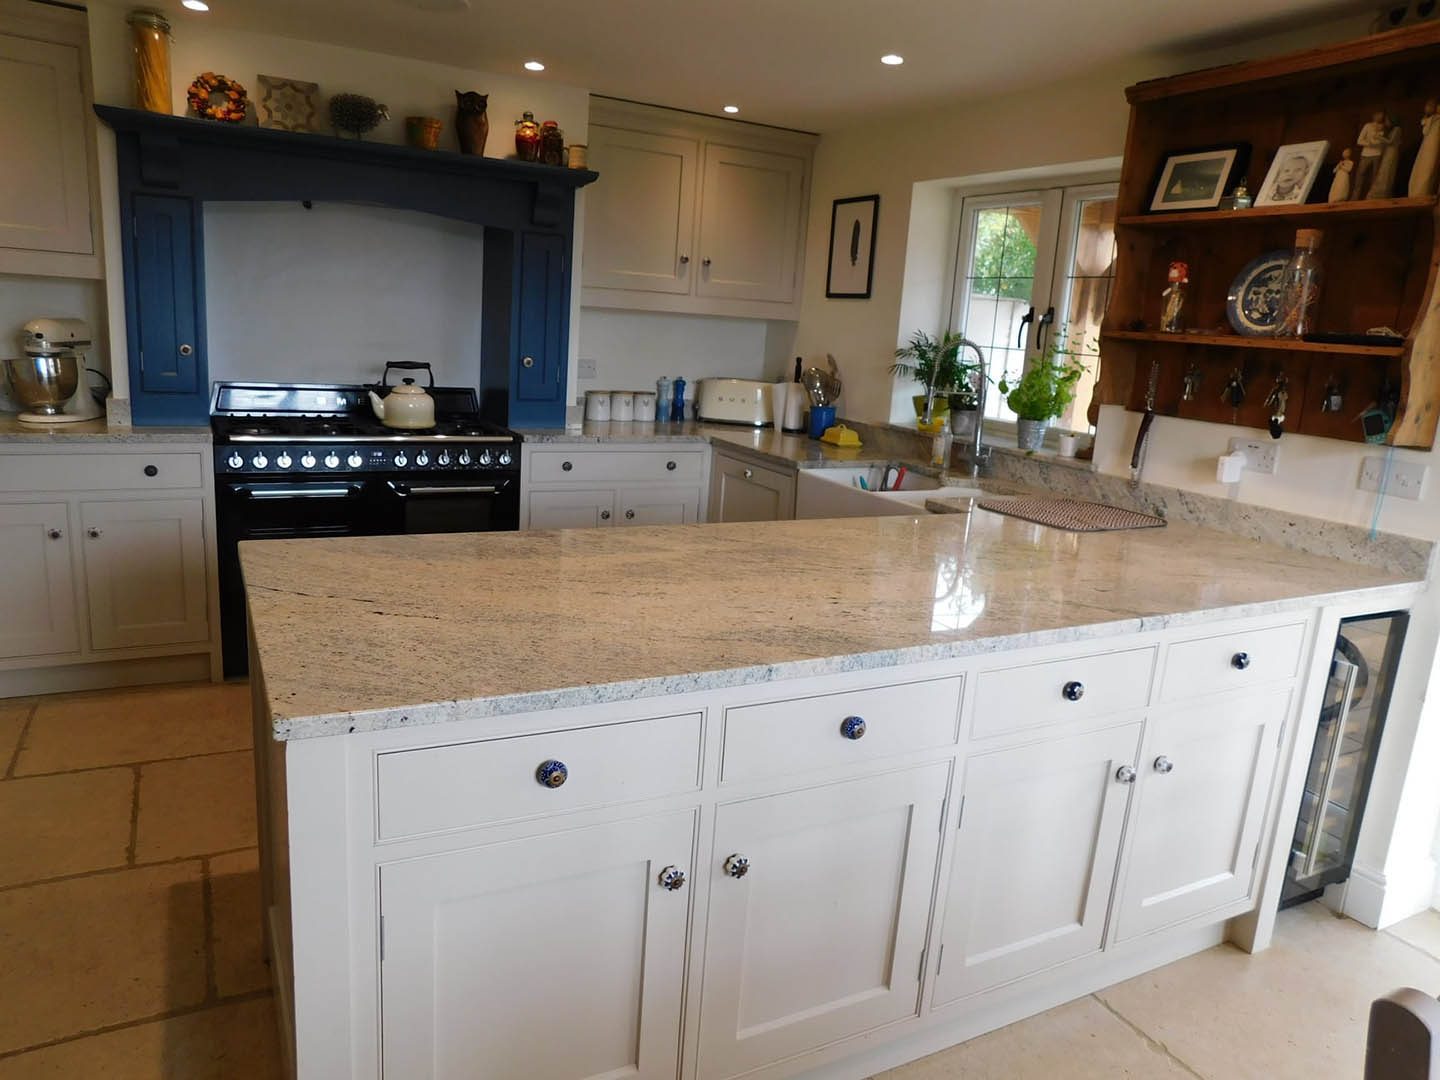 A full view of a bespoke fitted kitchen